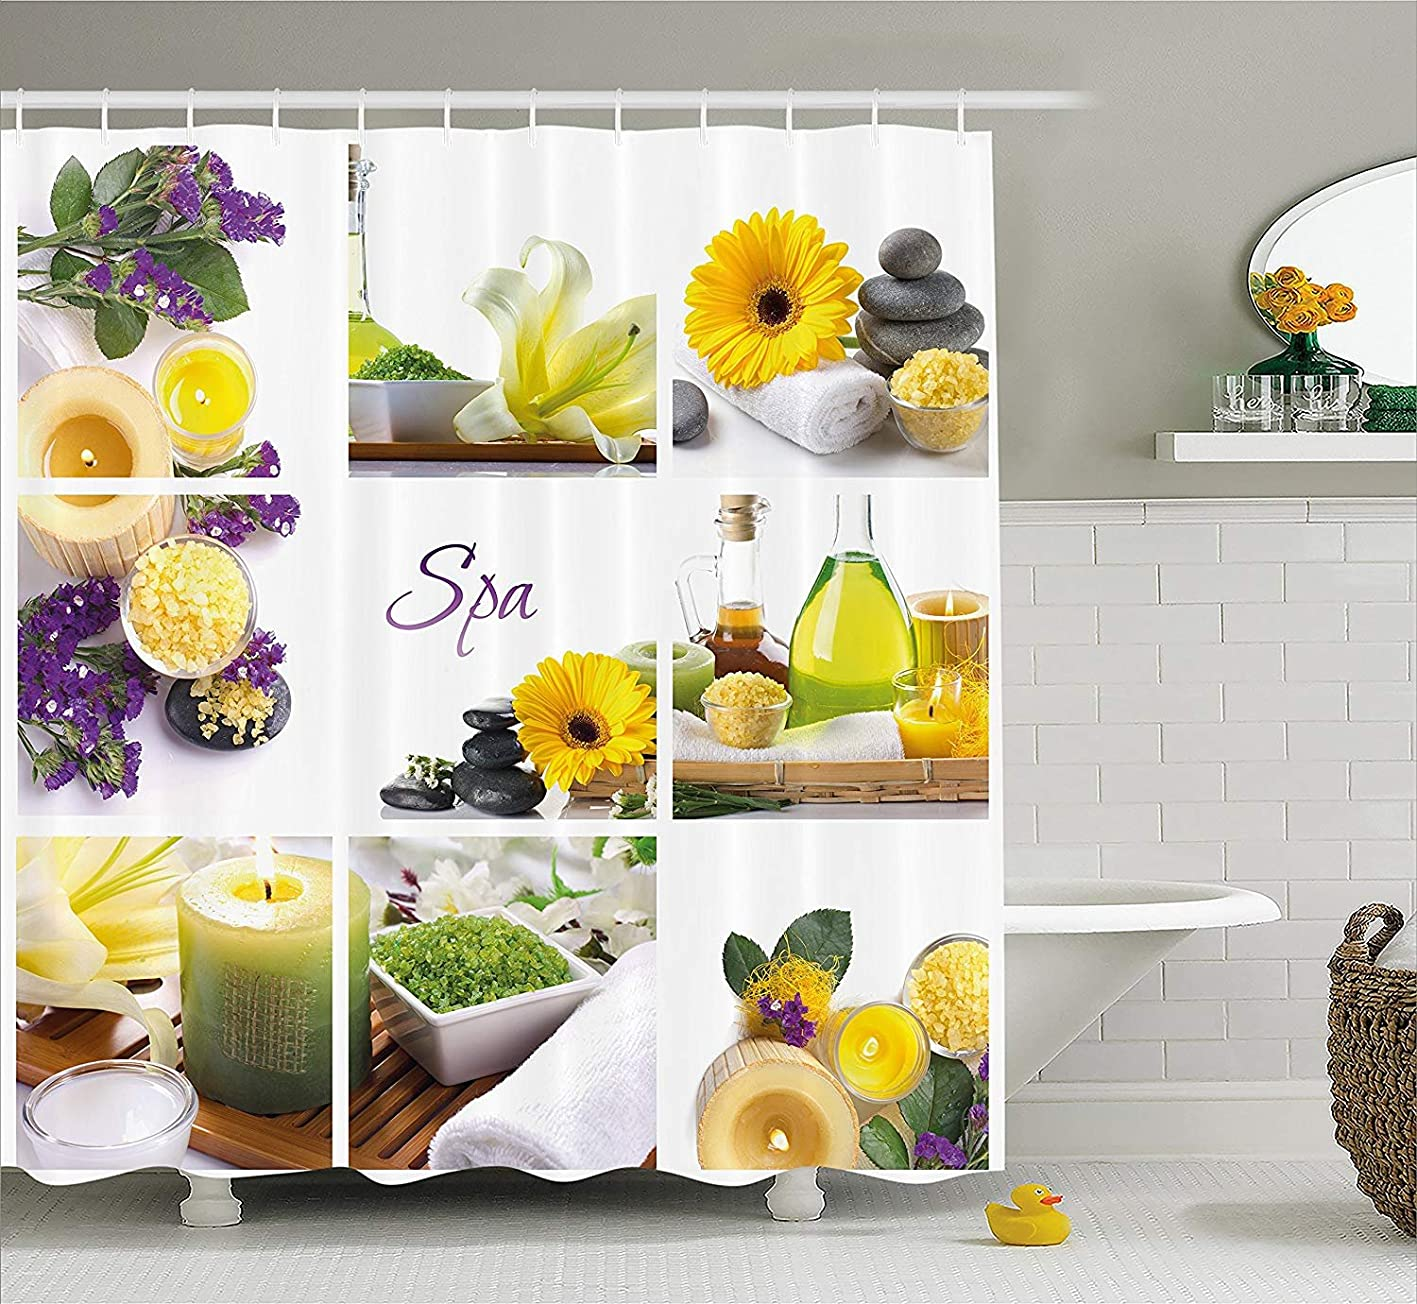 SPXUBZ Spa Yellow Happy Peaceful Spa Day Flowers Candles Herbal Oils Yellow Purple White Shower Curtain Waterproof Bathroom Decor Polyester Fabric Curtain Sets Hooks hslxtmpuvnw258